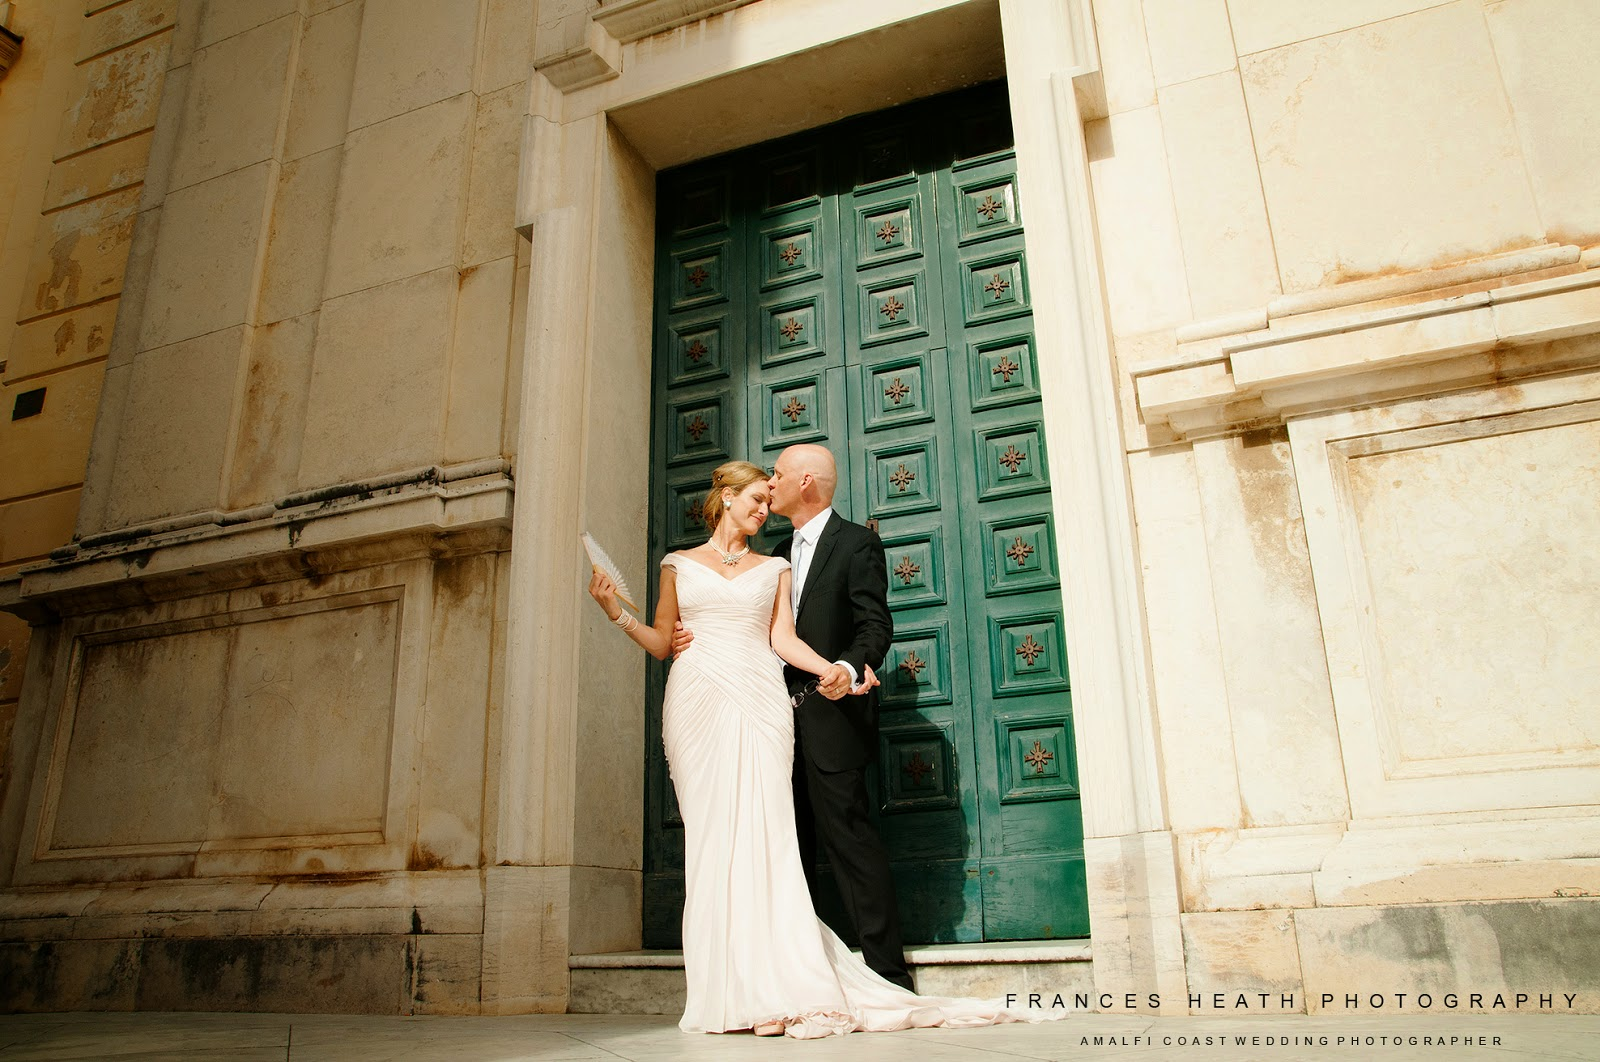 Wedding portrait in Positano Italy